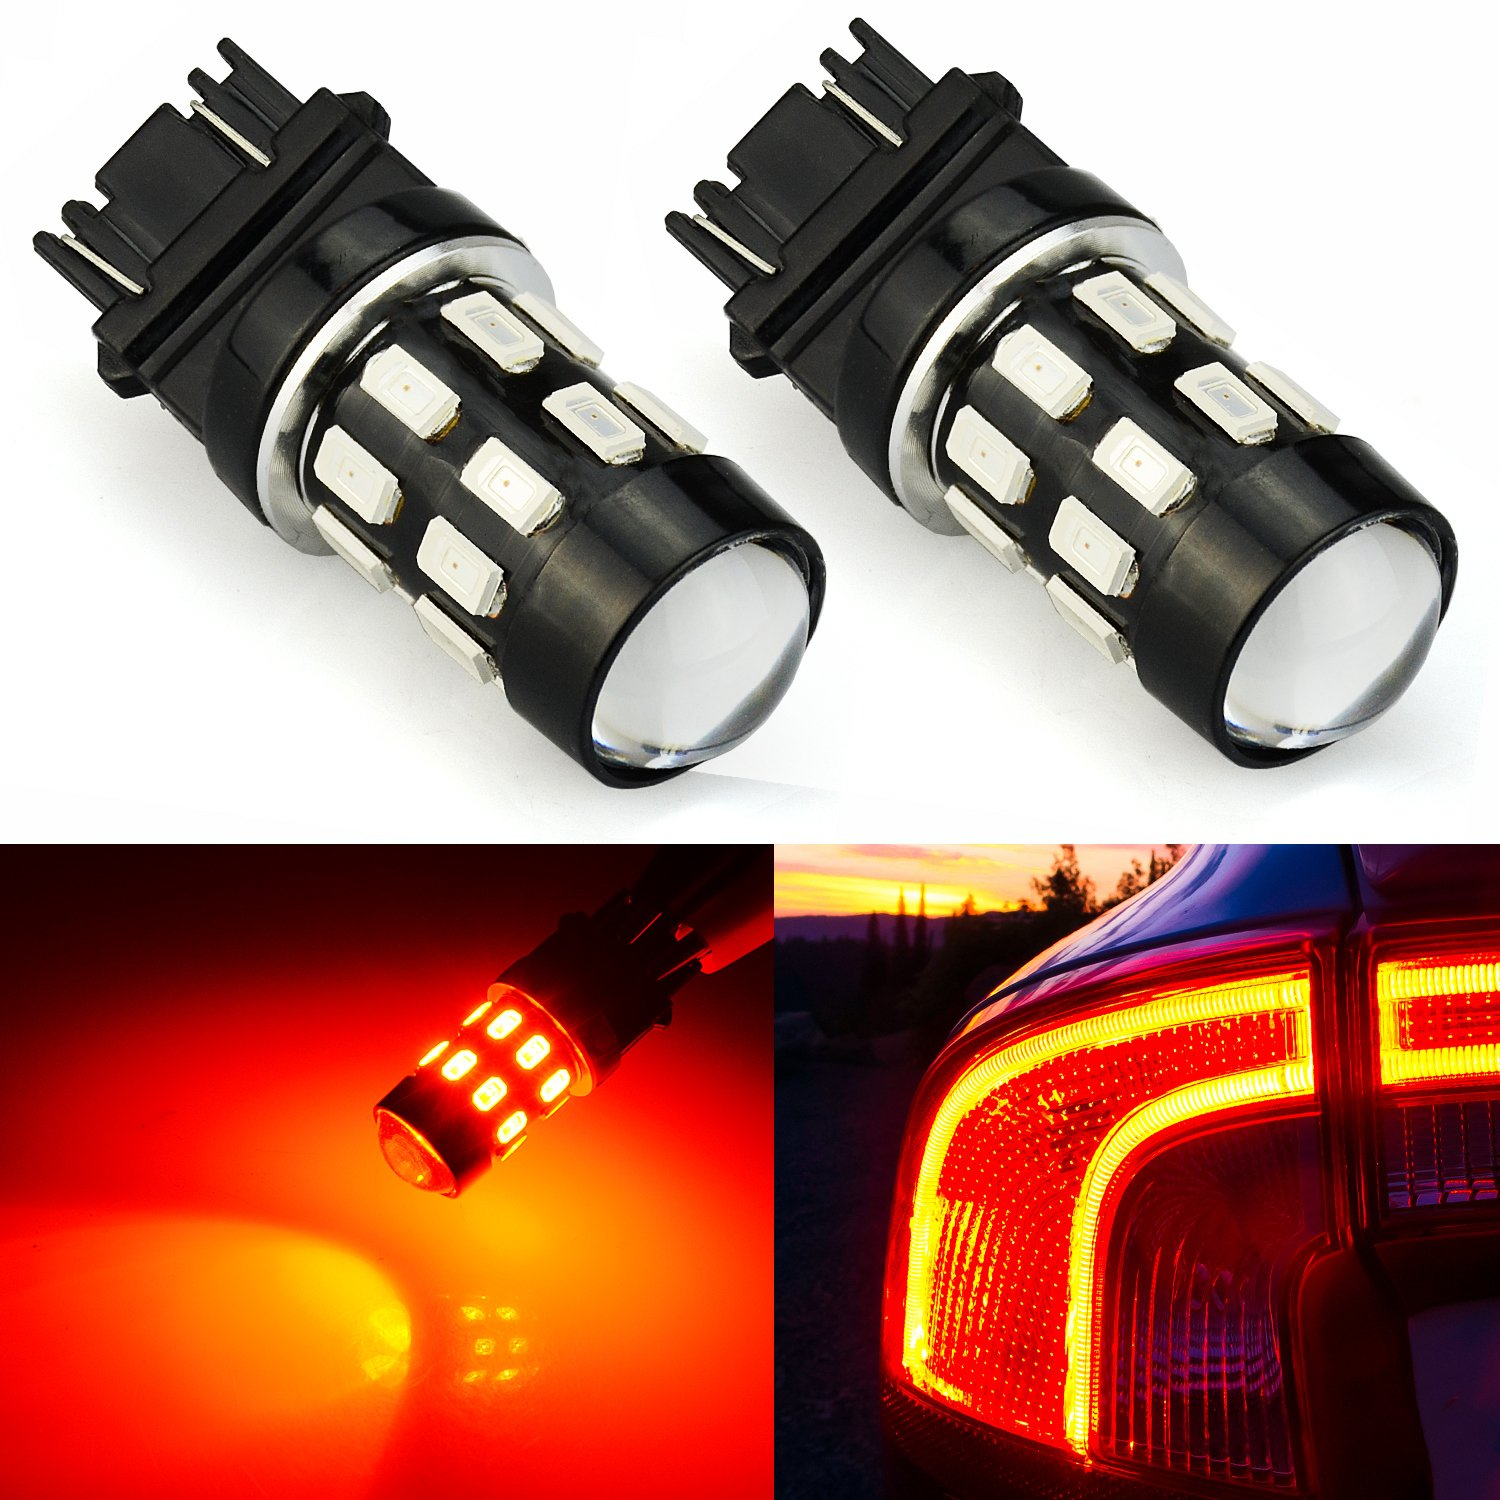 JDM ASTAR Super Bright 5730 Chipsets 3056 3156 3057 3157 LED Bulbs with Projector,Brilliant Red ( Only work for standard socket , not for ck socket) JDM ASTAR-3157-5730-24R